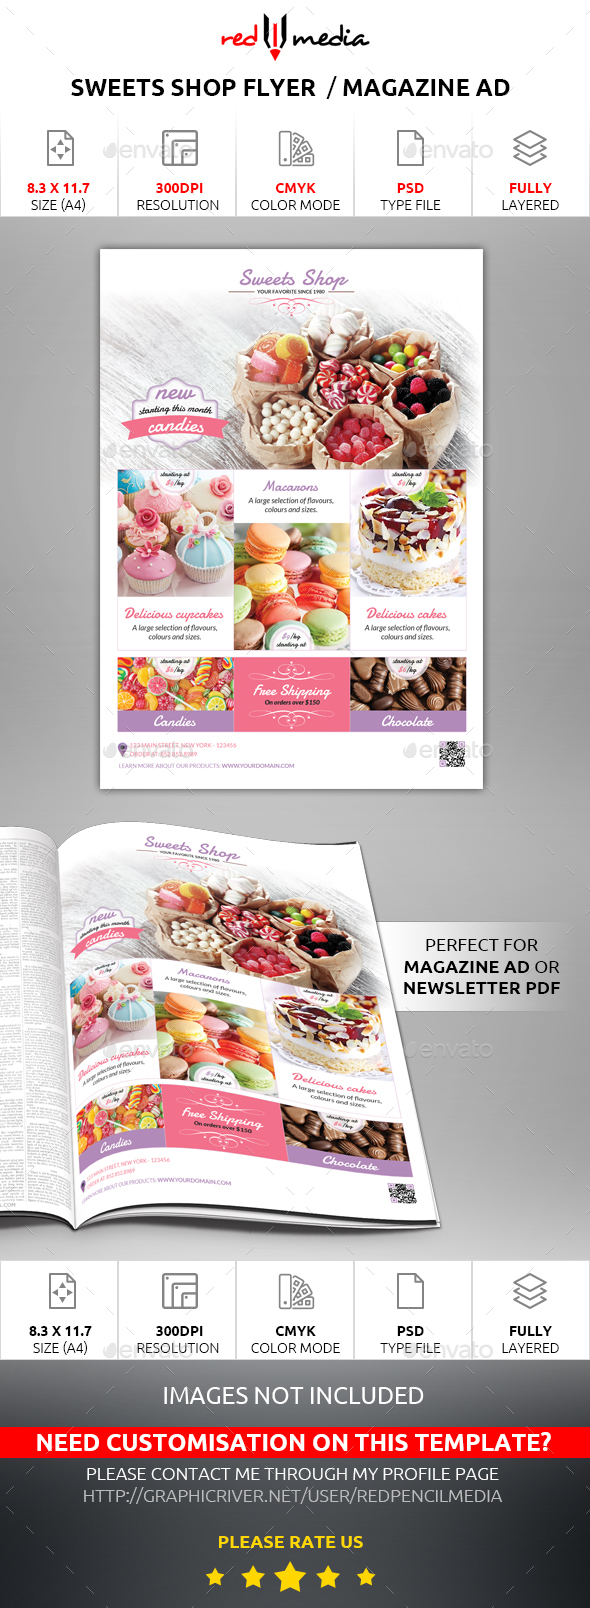 Sweets Shop Flyer / Magazine AD - Restaurant Flyers